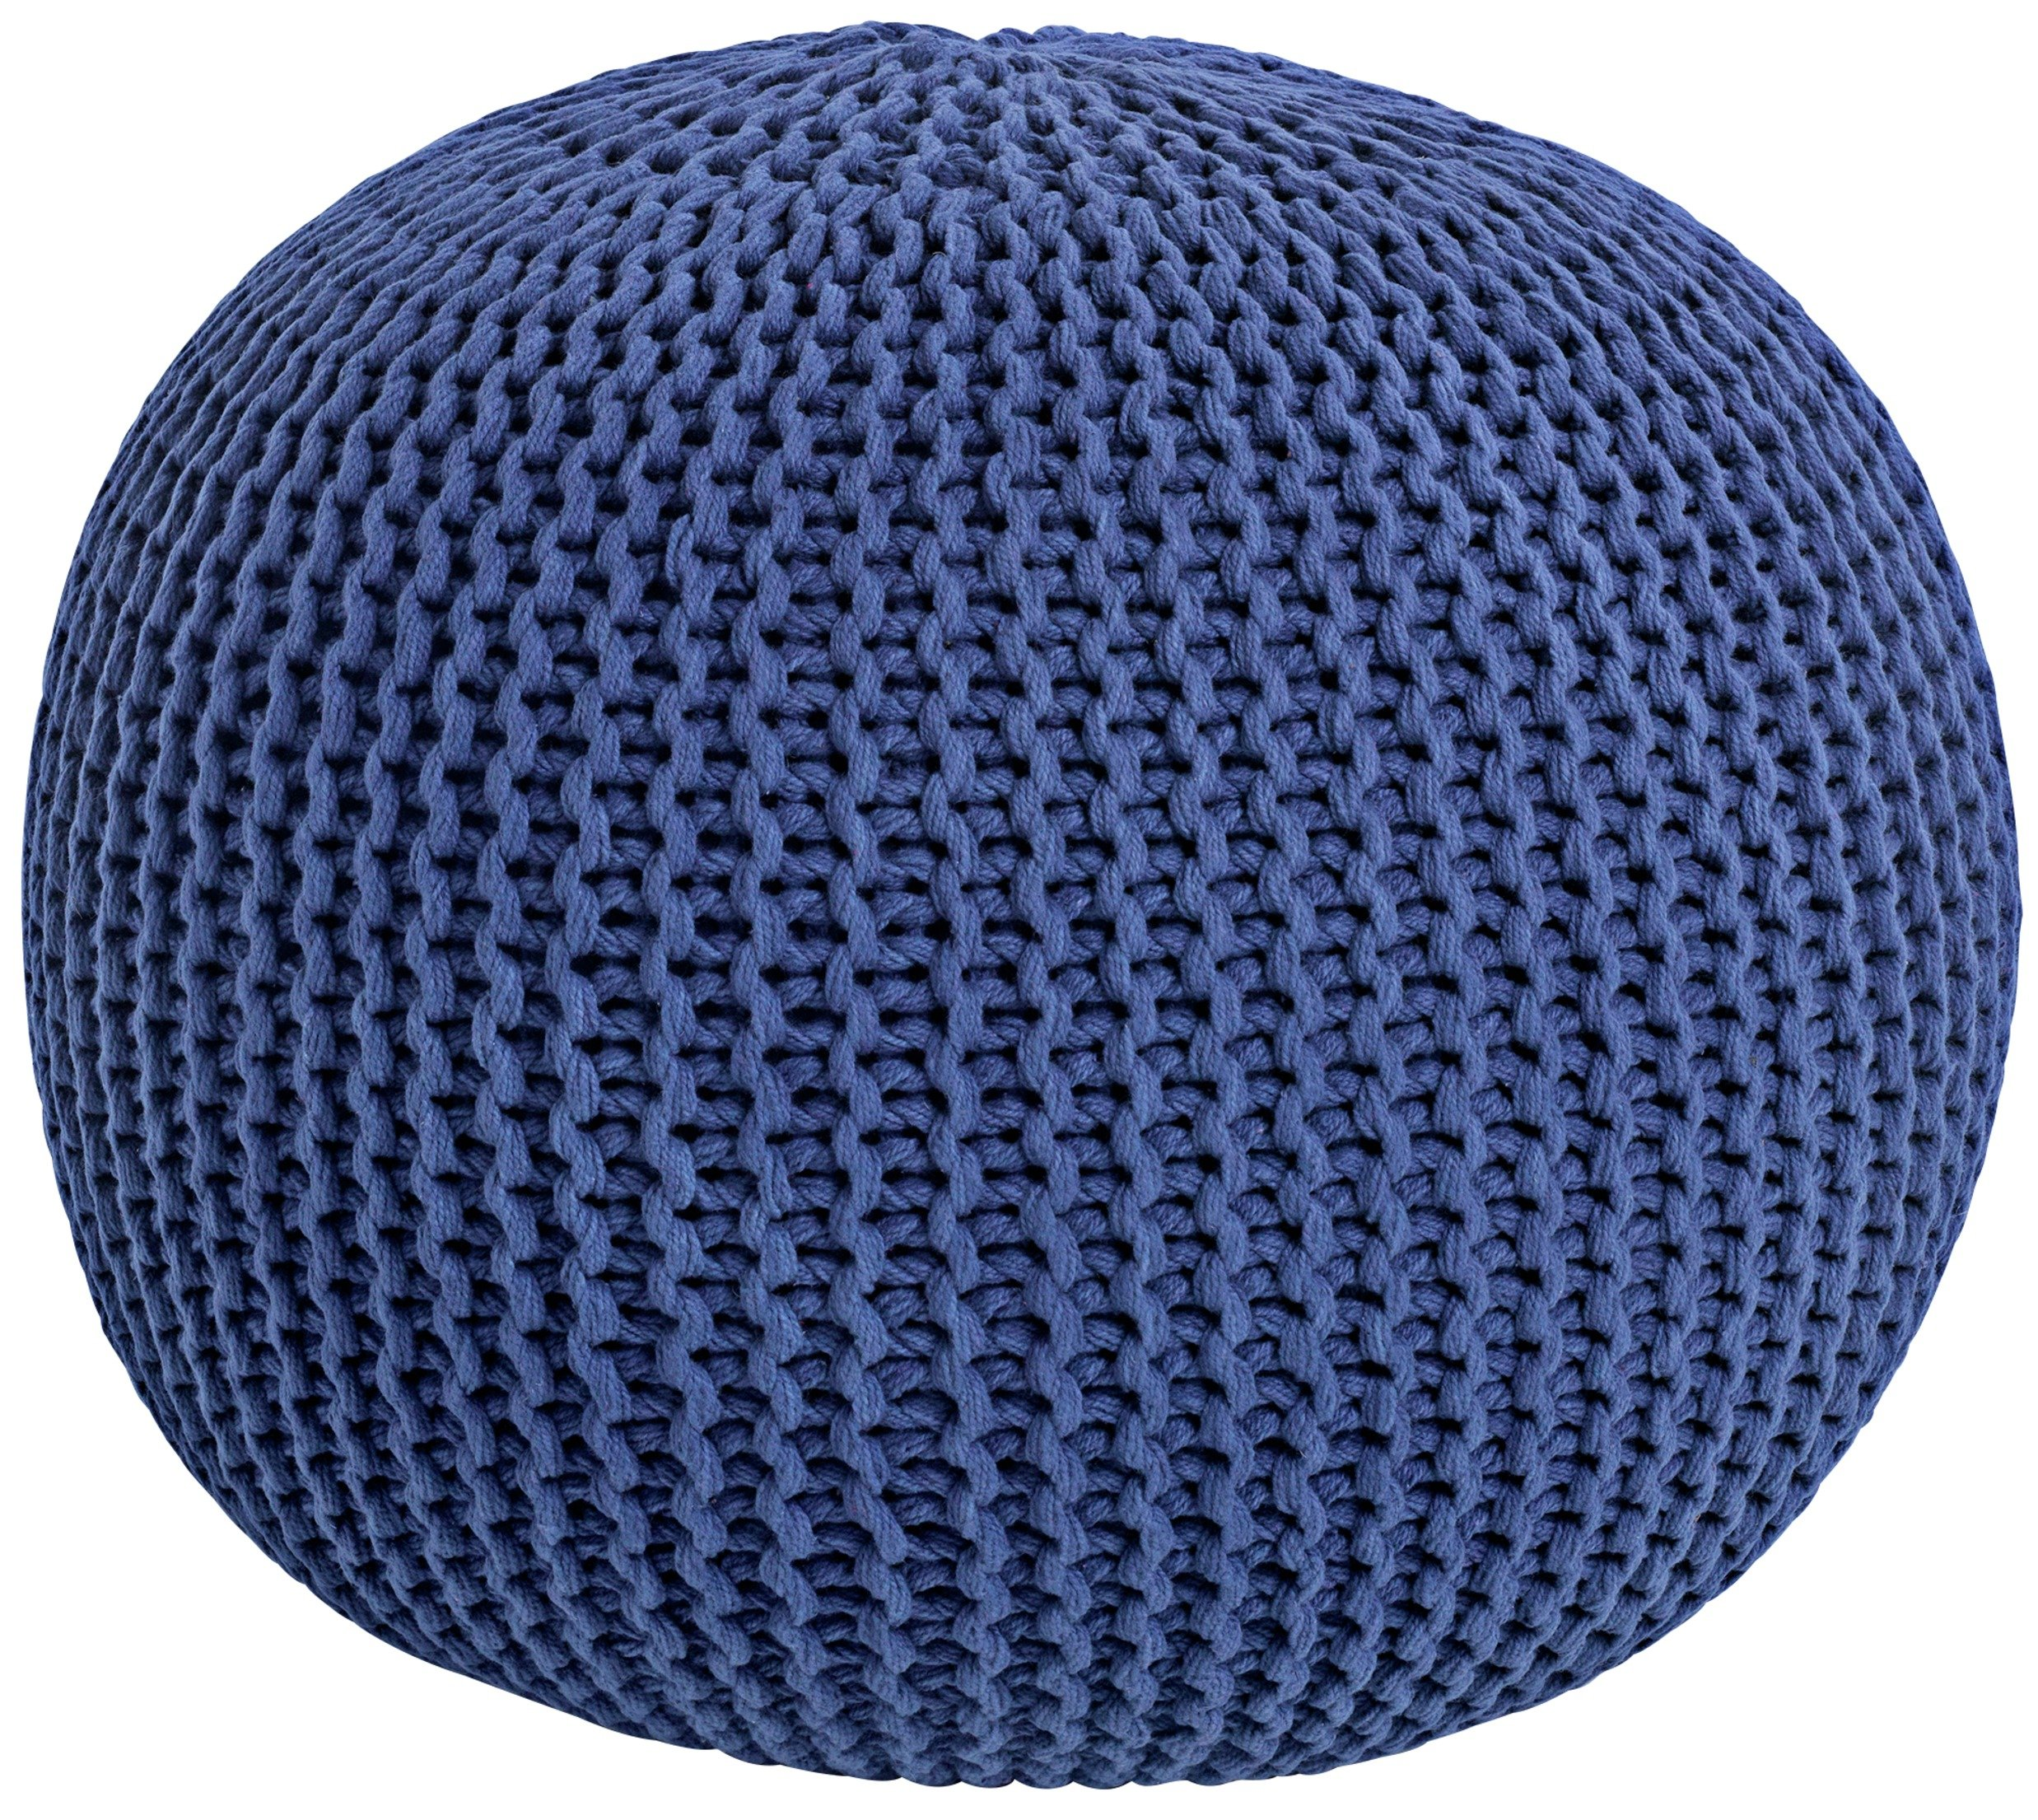 HOME Knitted Pouffe Footstool - Blue